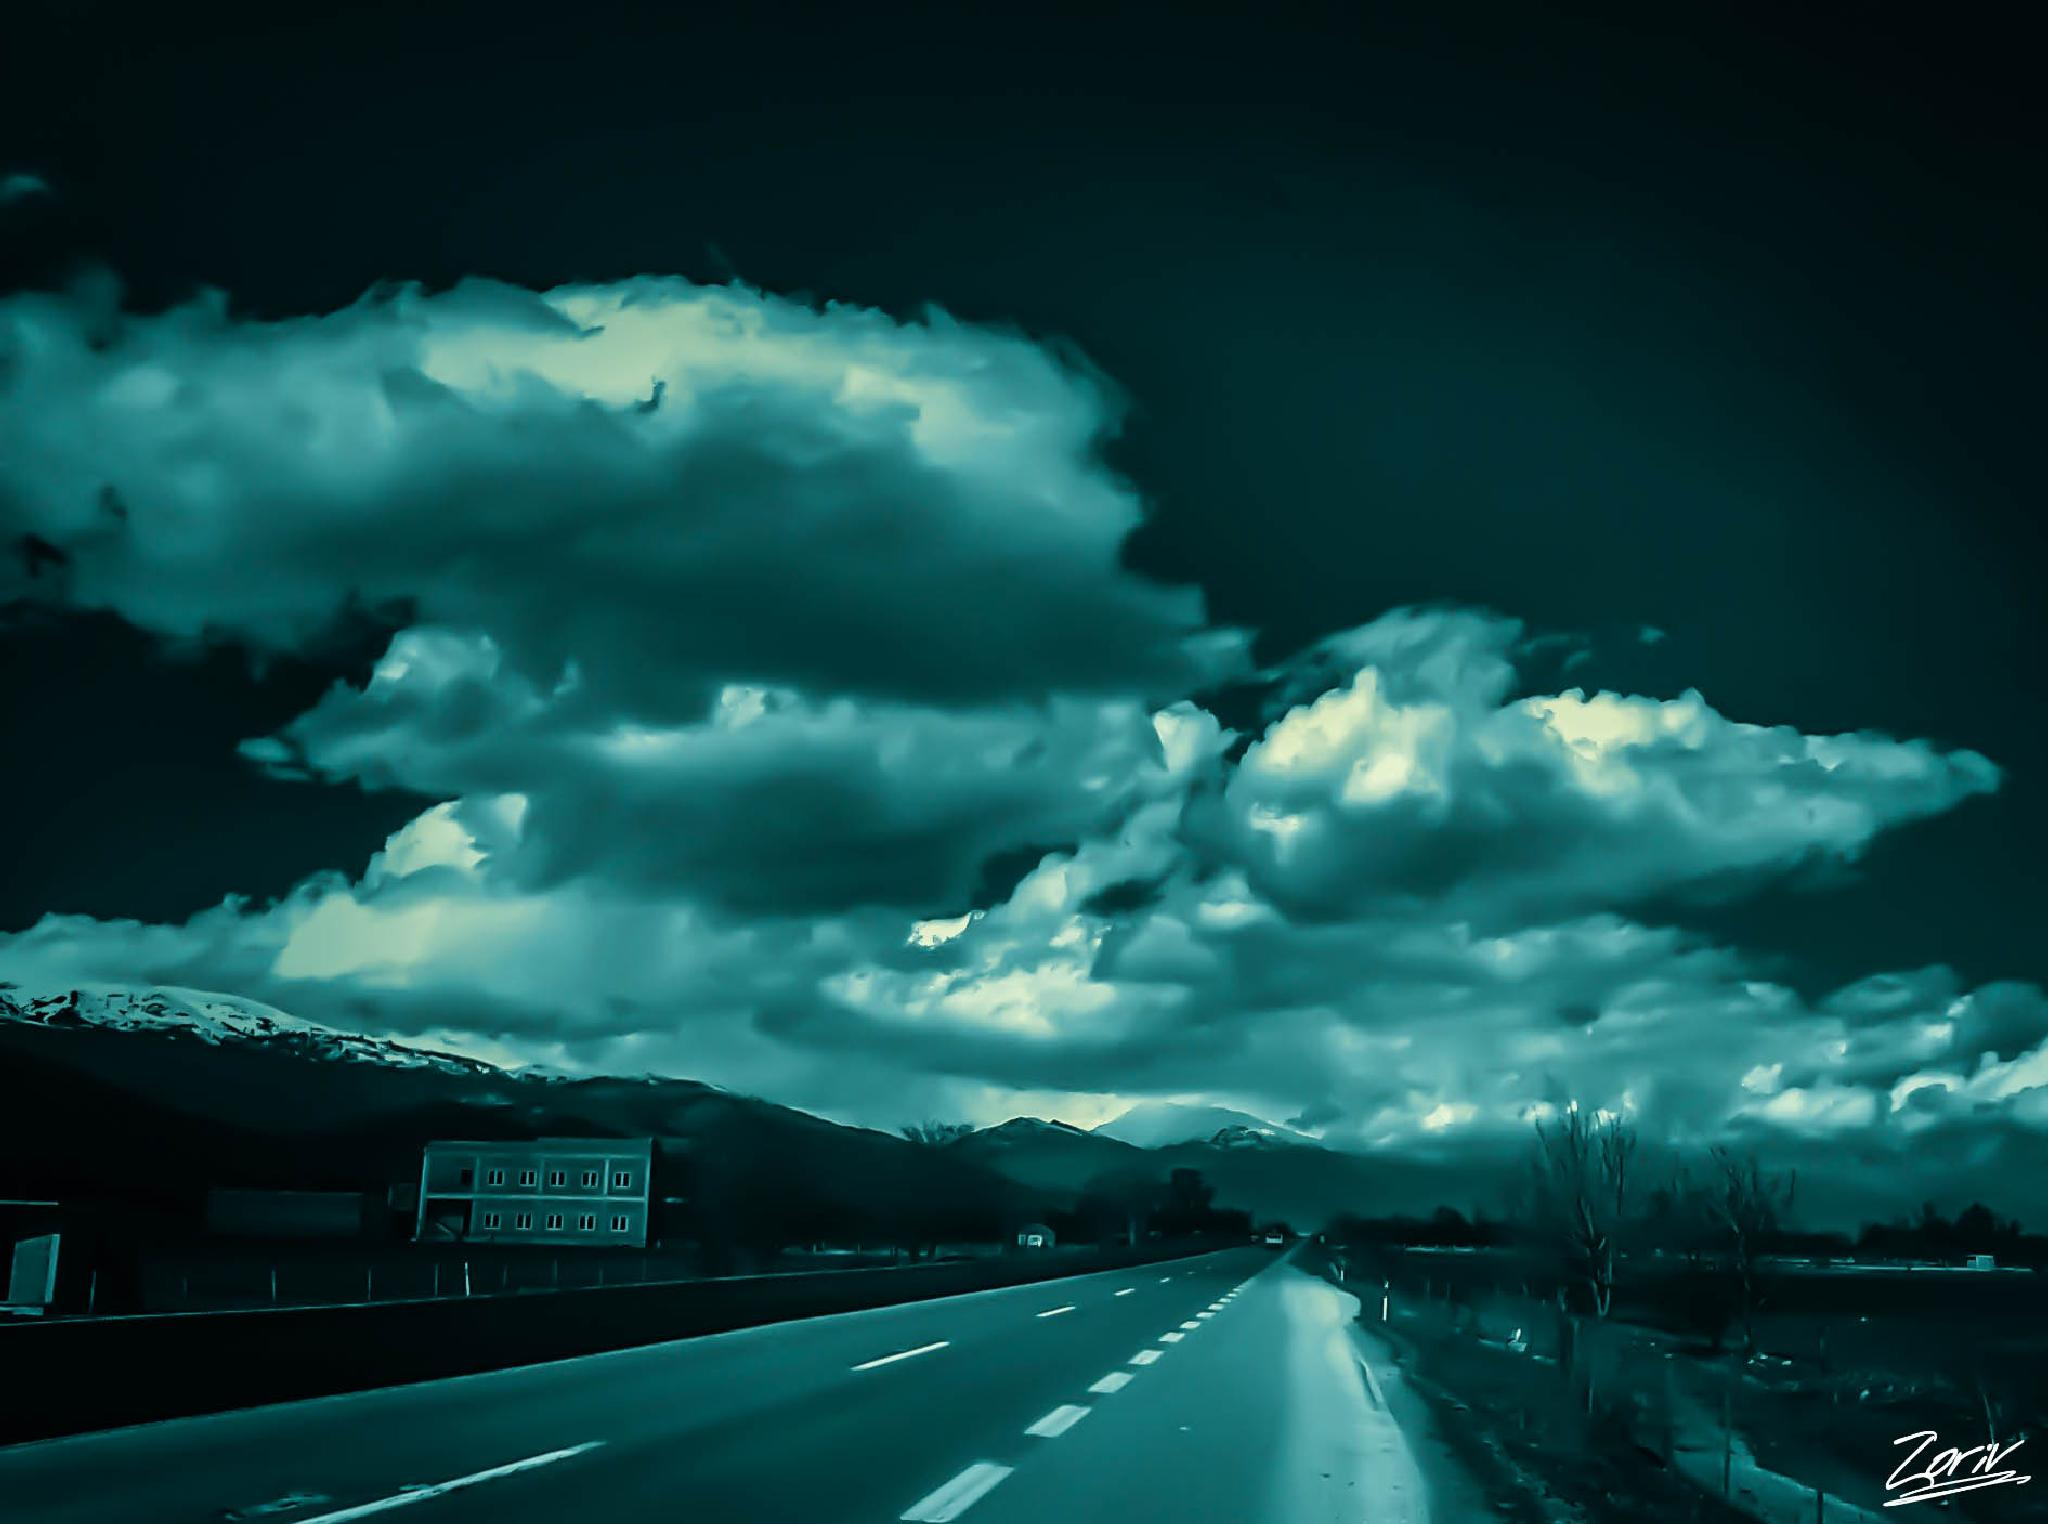 On the highway by zoriv